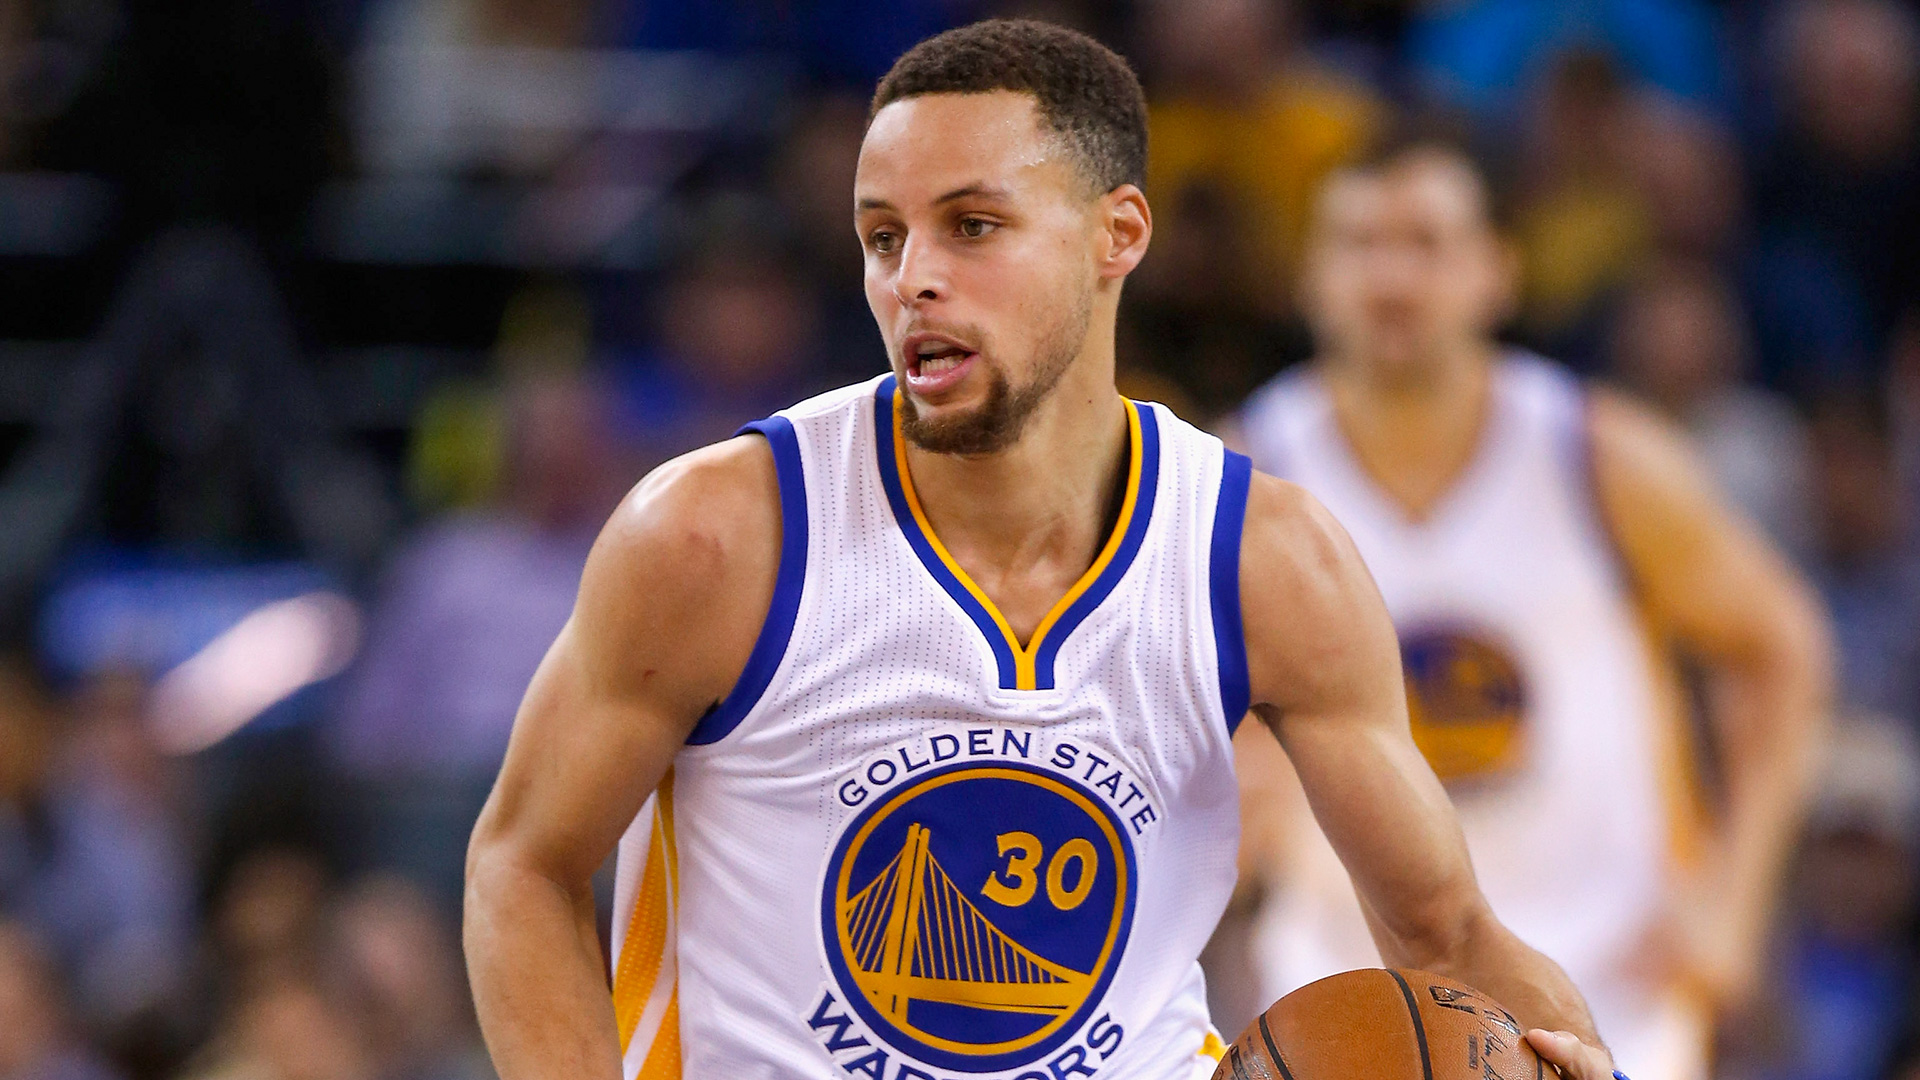 e of Steph Curry s college teammates pares him to Pistol